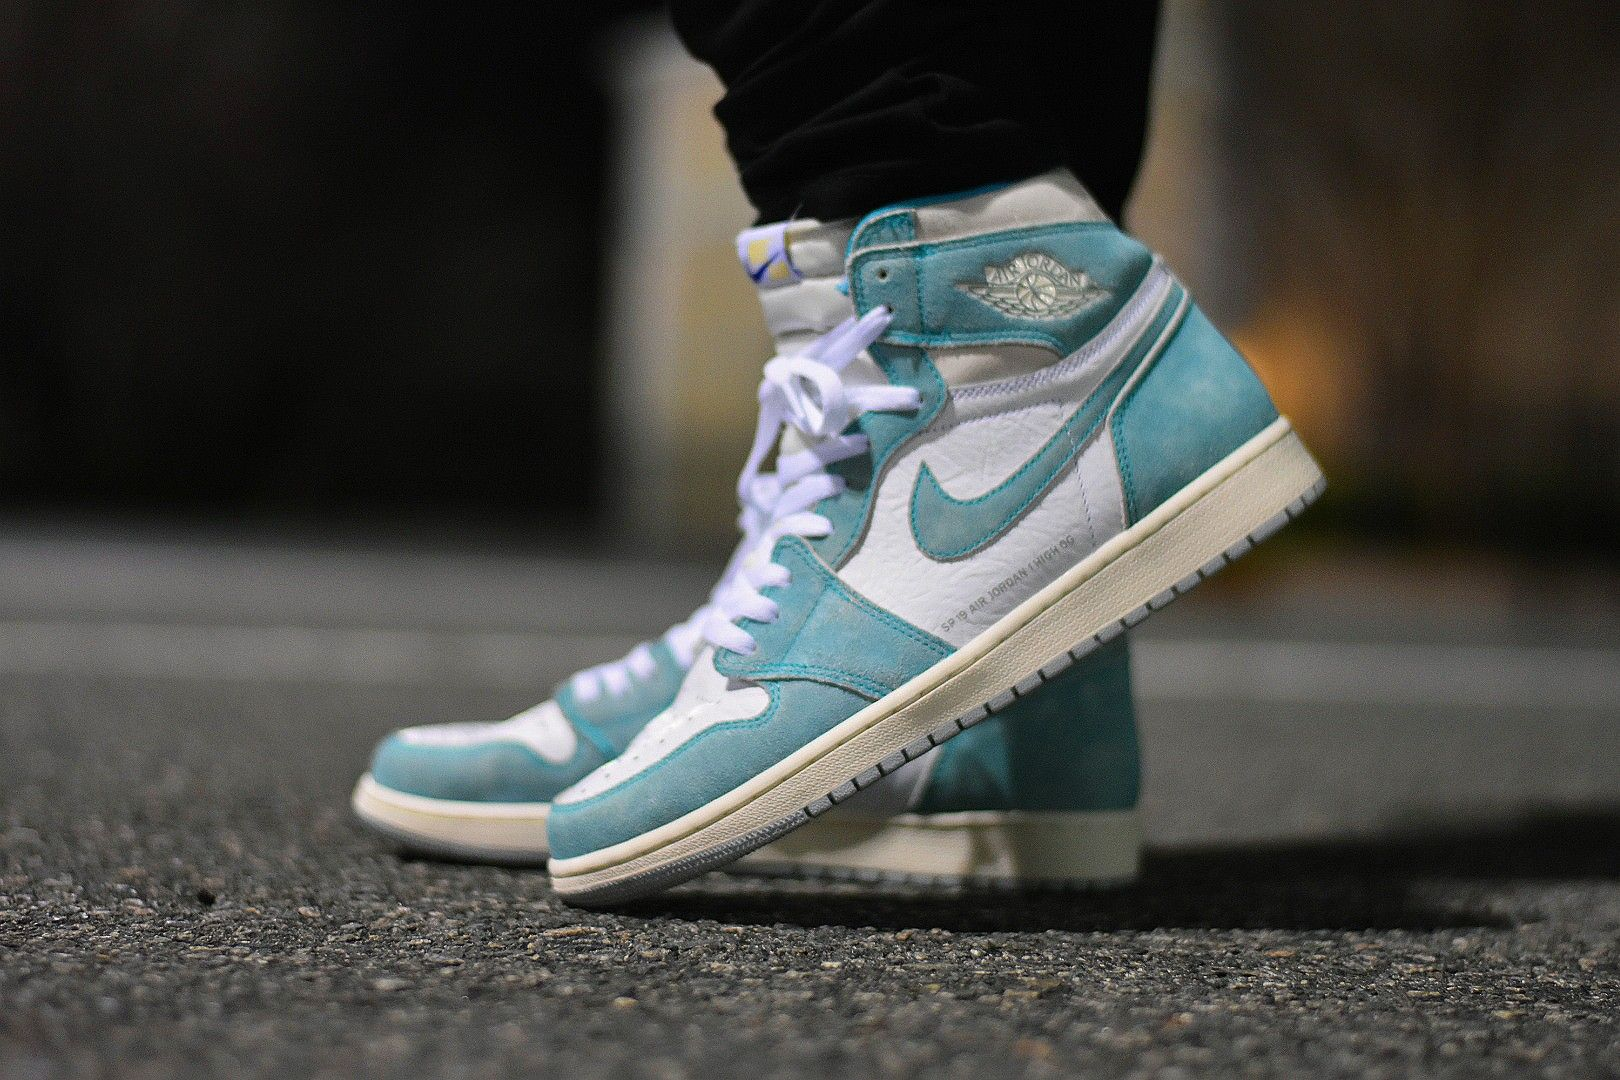 781ee350200 Air Jordan 1 Turbo Green on feet. Sneakers. @Nike @Jordan23 ...